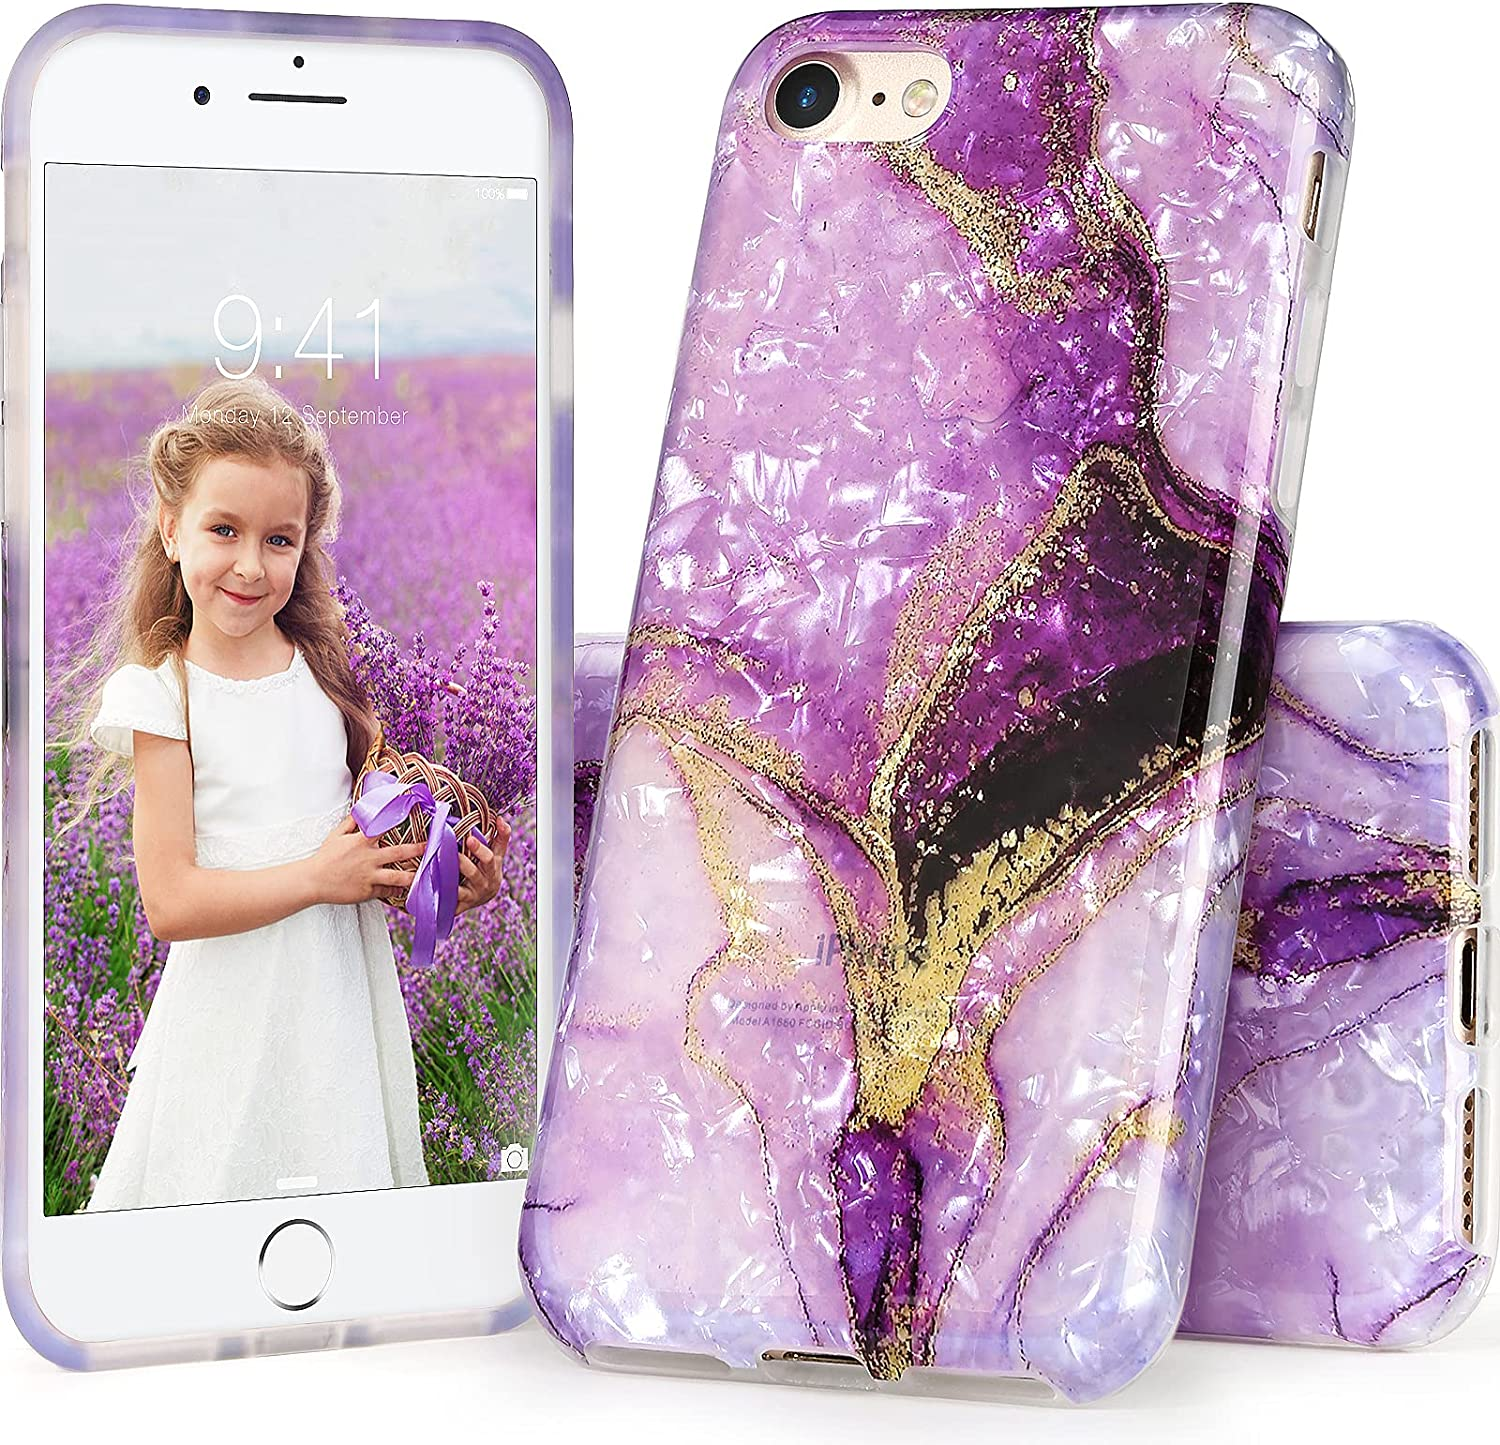 iPhone SE 2020 Case for Women, IDYStar White Translucent Sparkle Clear Cheeath Design Cover, Lightweight Soft Silicone Protective Durable Case for iPhone 6/6s/7/8/SE 2020, Purple Marble